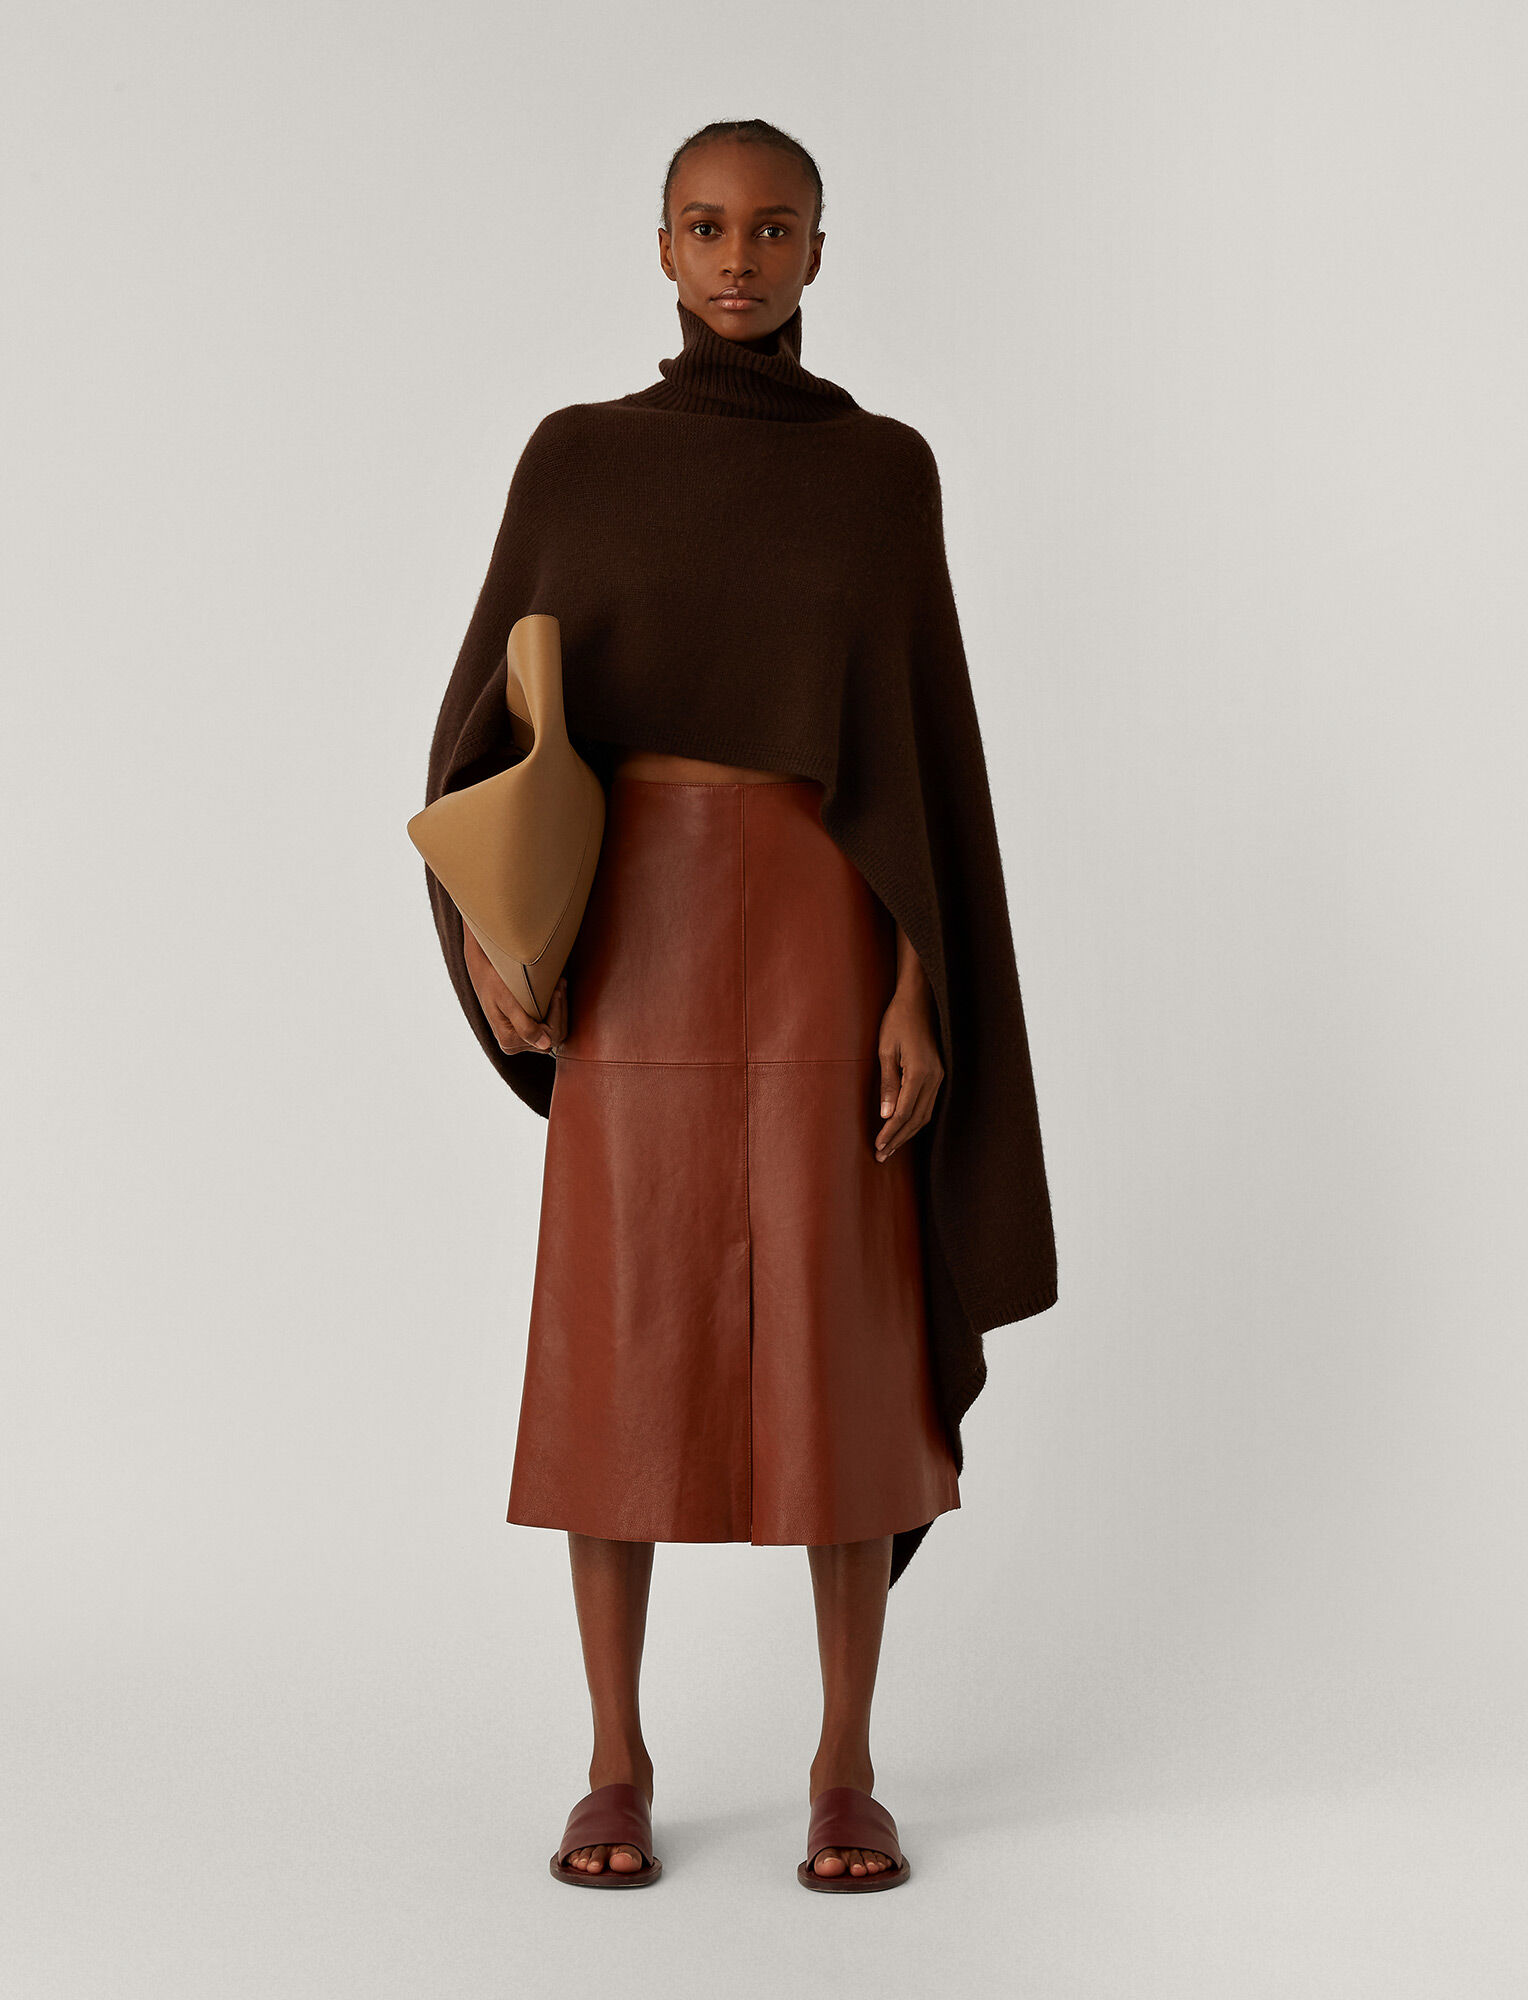 Joseph, Poncho Luxe Cashmere Knit, in Chocolate